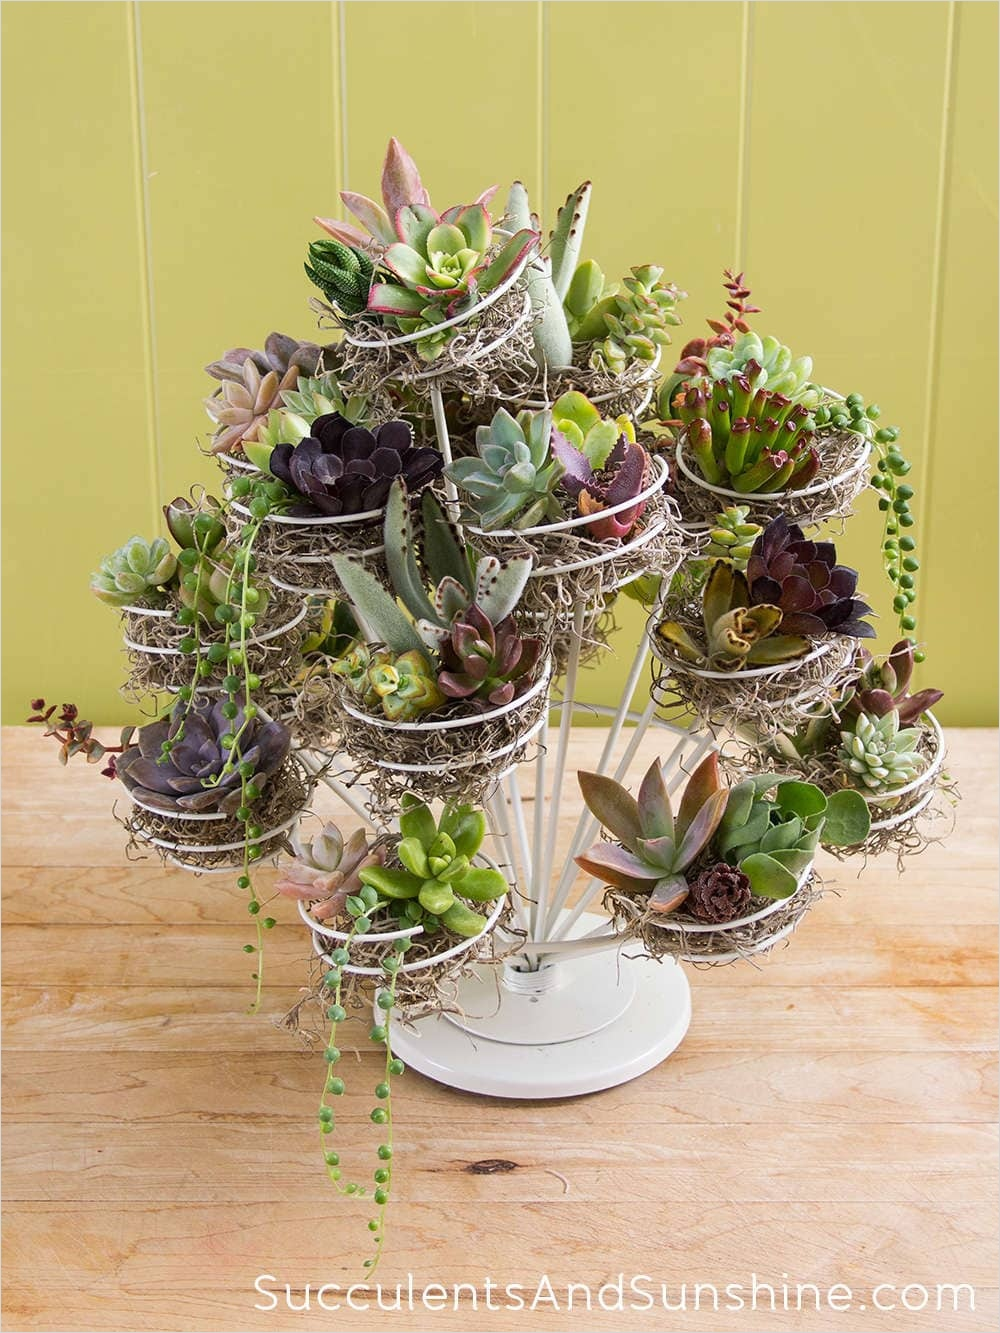 43 Beautiful Cactus Centerpiece Ideas 86 Learn How to Make A Succulent Stand Using A Cupcake Display 7